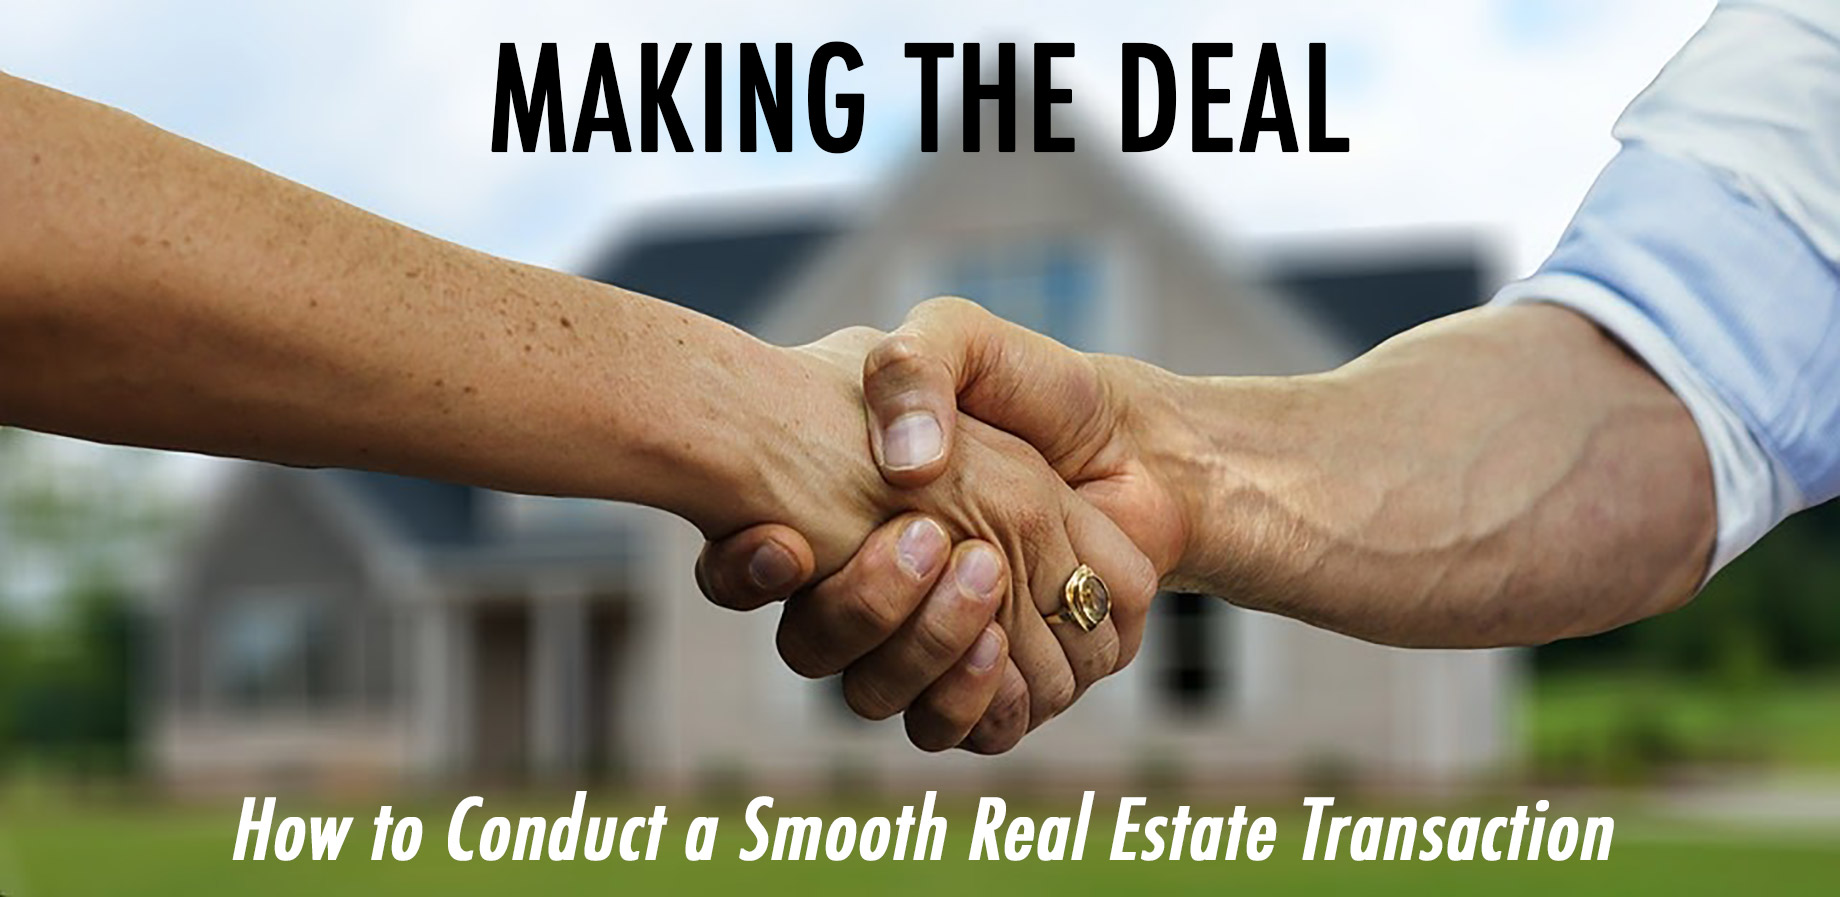 Making The Deal - How To Conduct A Smooth Real Estate Transaction